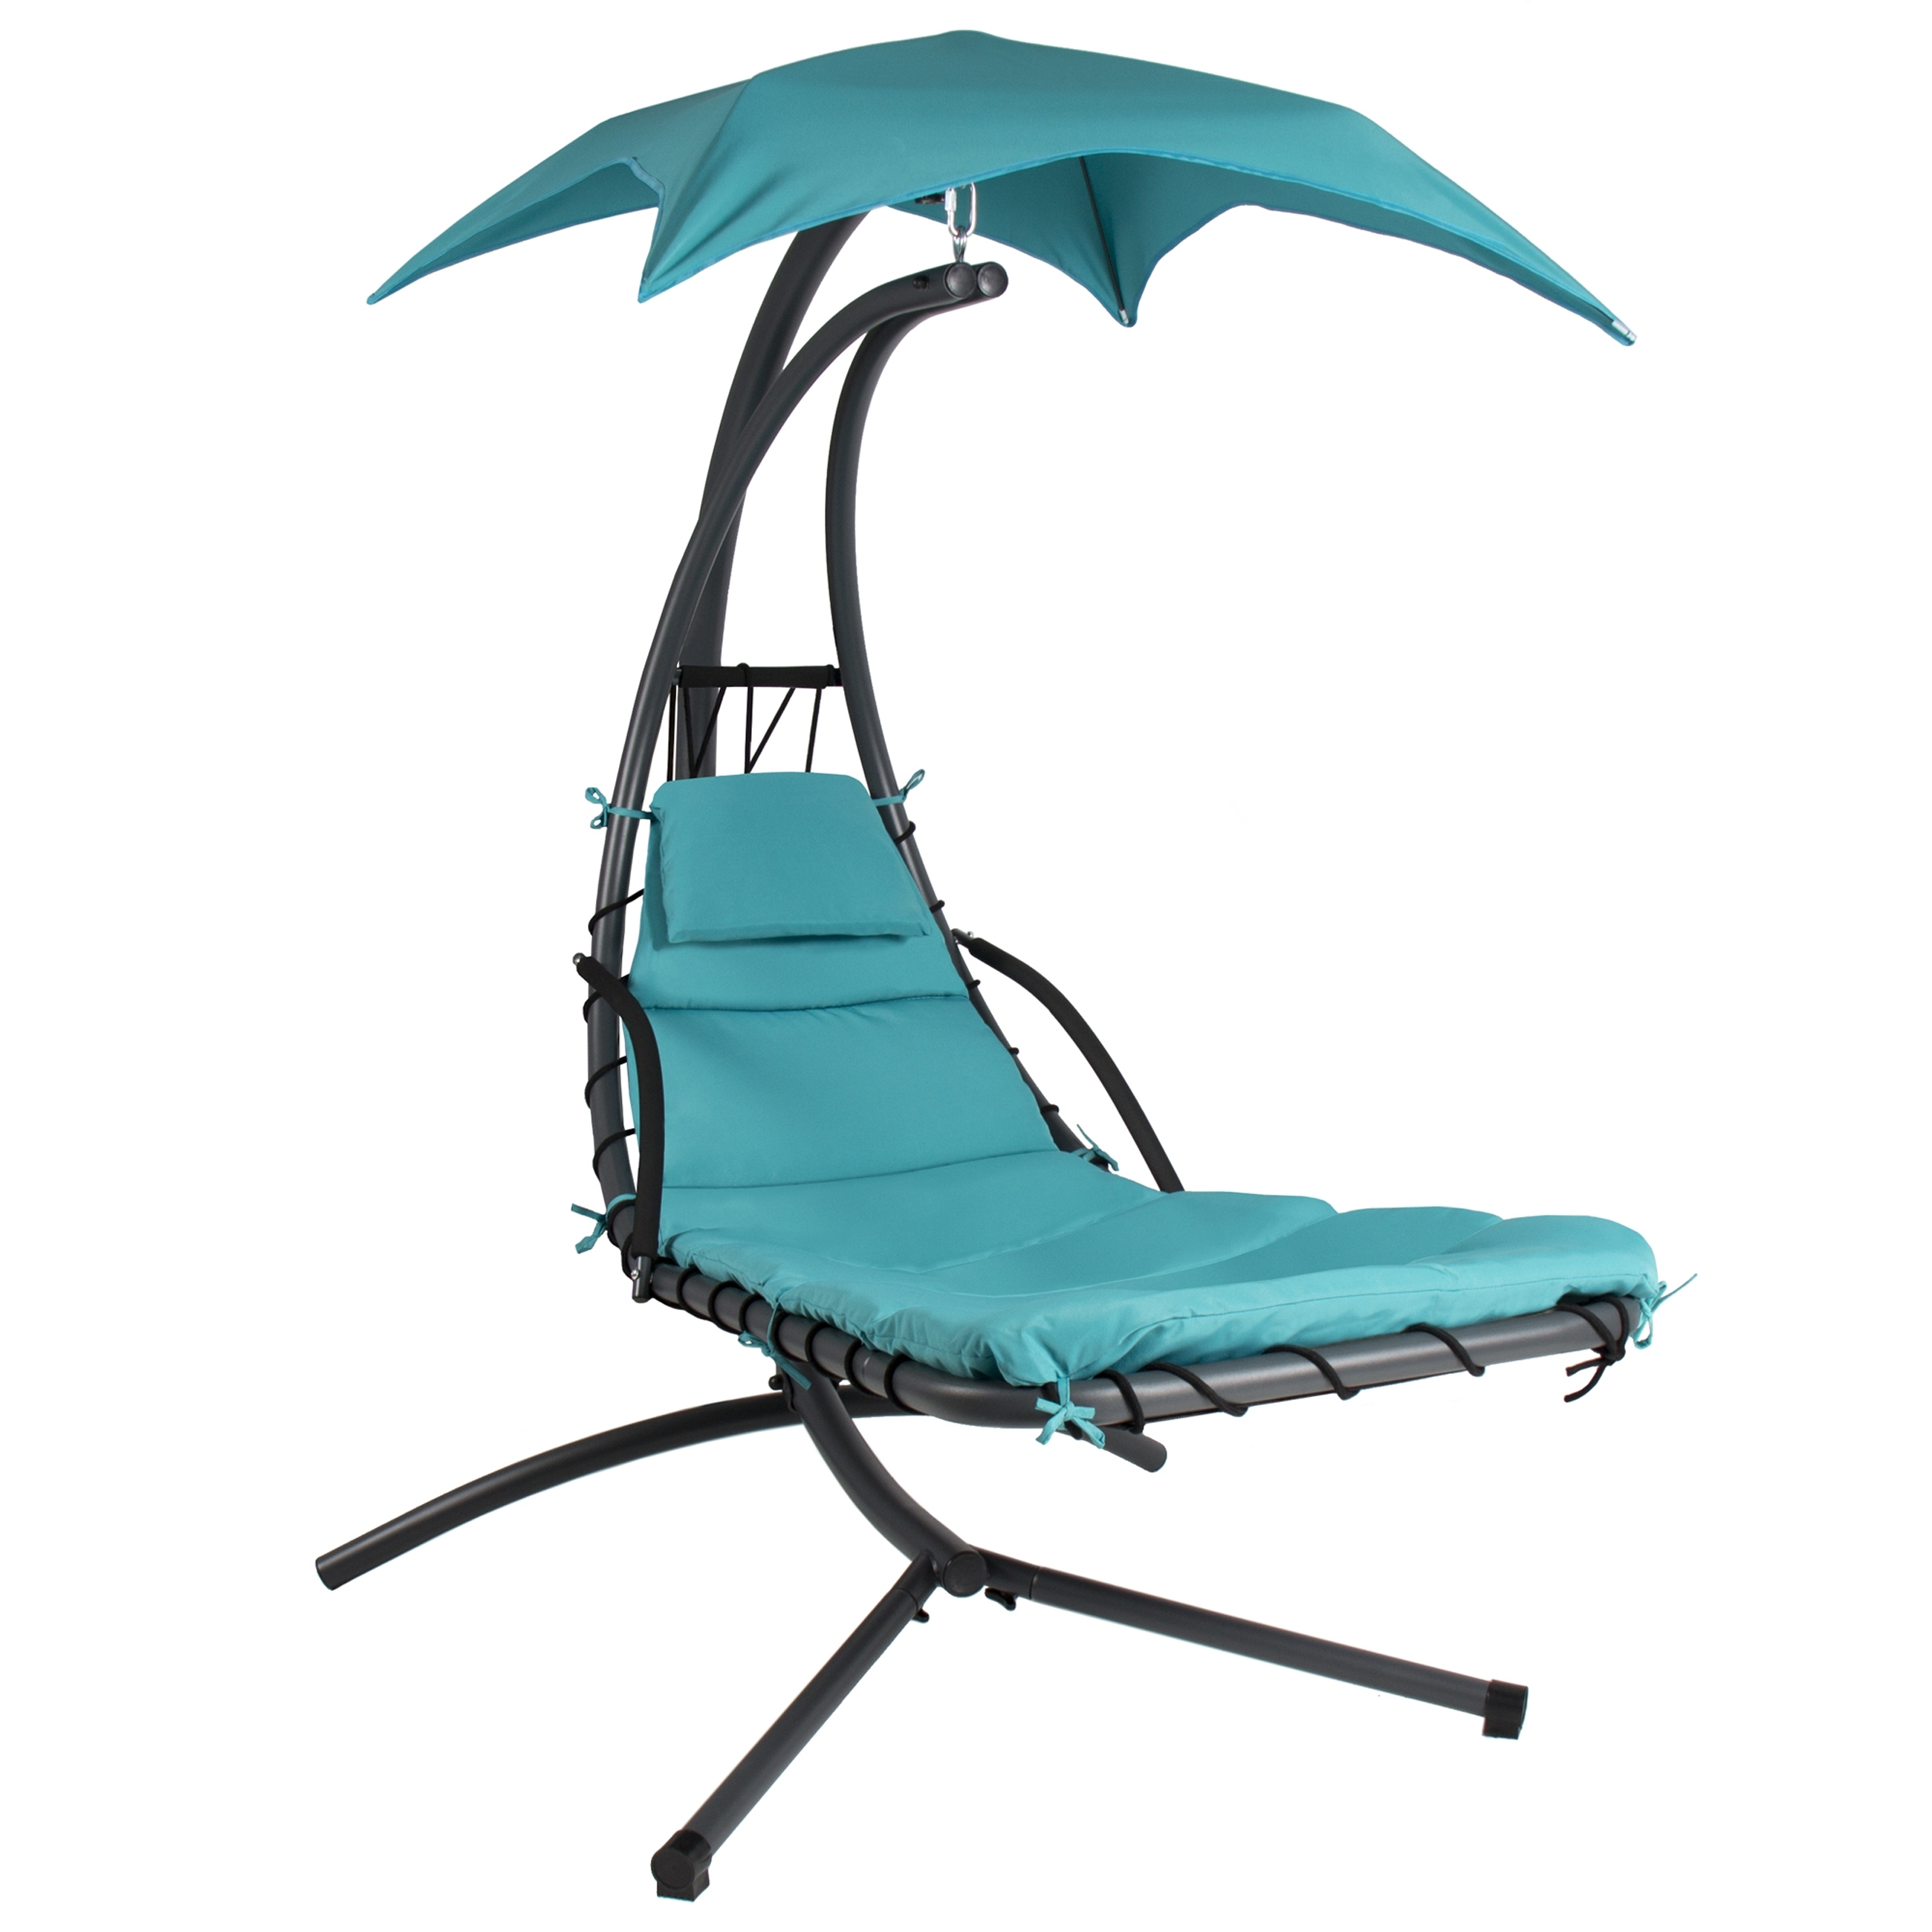 Chaise Lounge Swing Chairs Pertaining To Most Recently Released Hanging Chaise Lounger Chair Arc Stand Air Porch Swing Hammock (View 4 of 15)